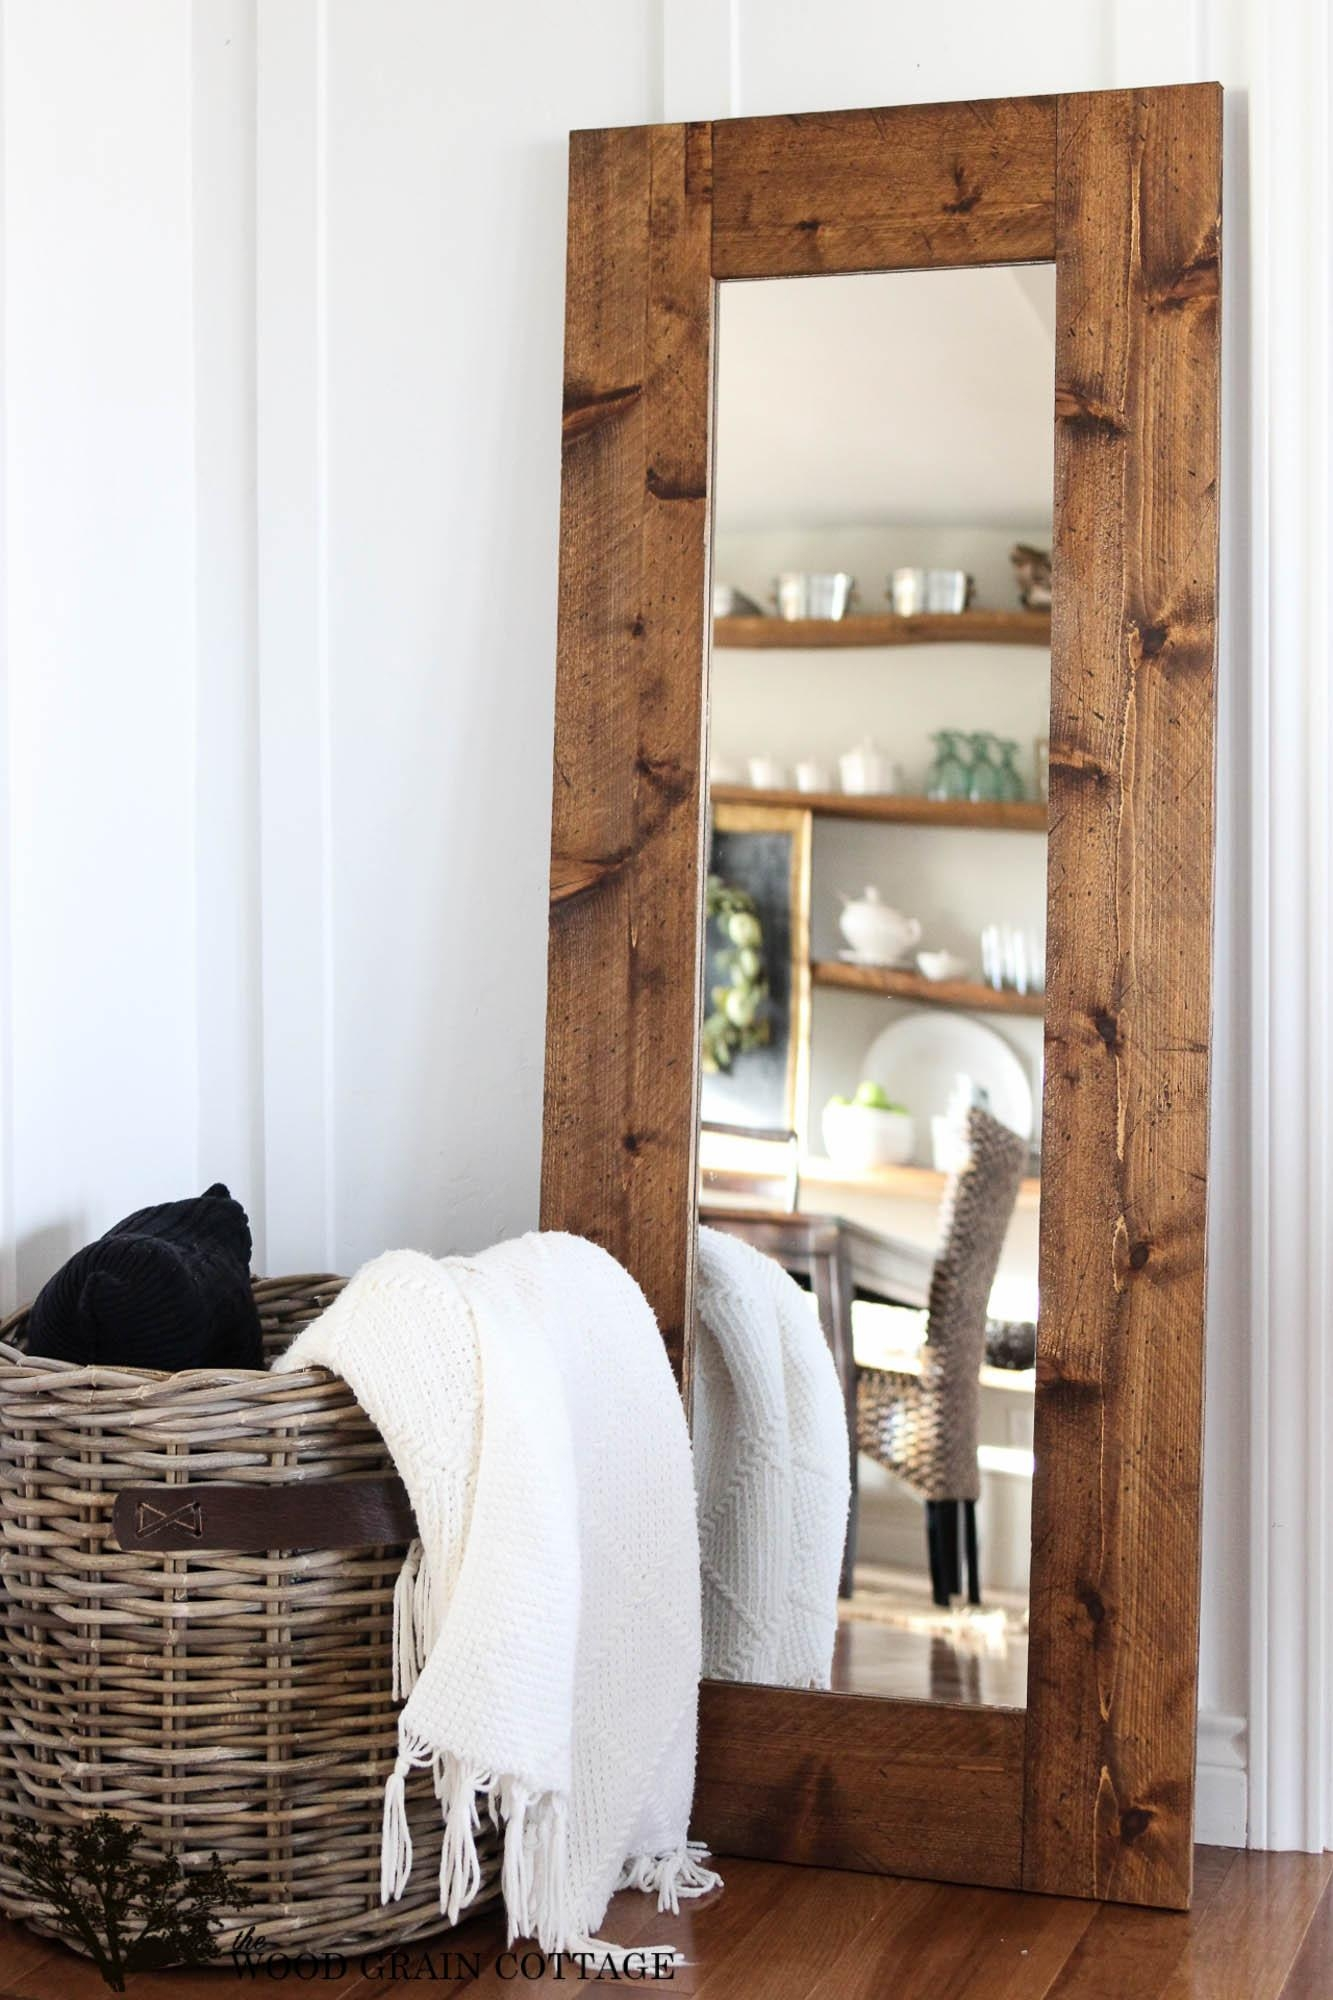 Diy Wood Framed Mirror – The Wood Grain Cottage For Timber Mirrors (View 16 of 20)